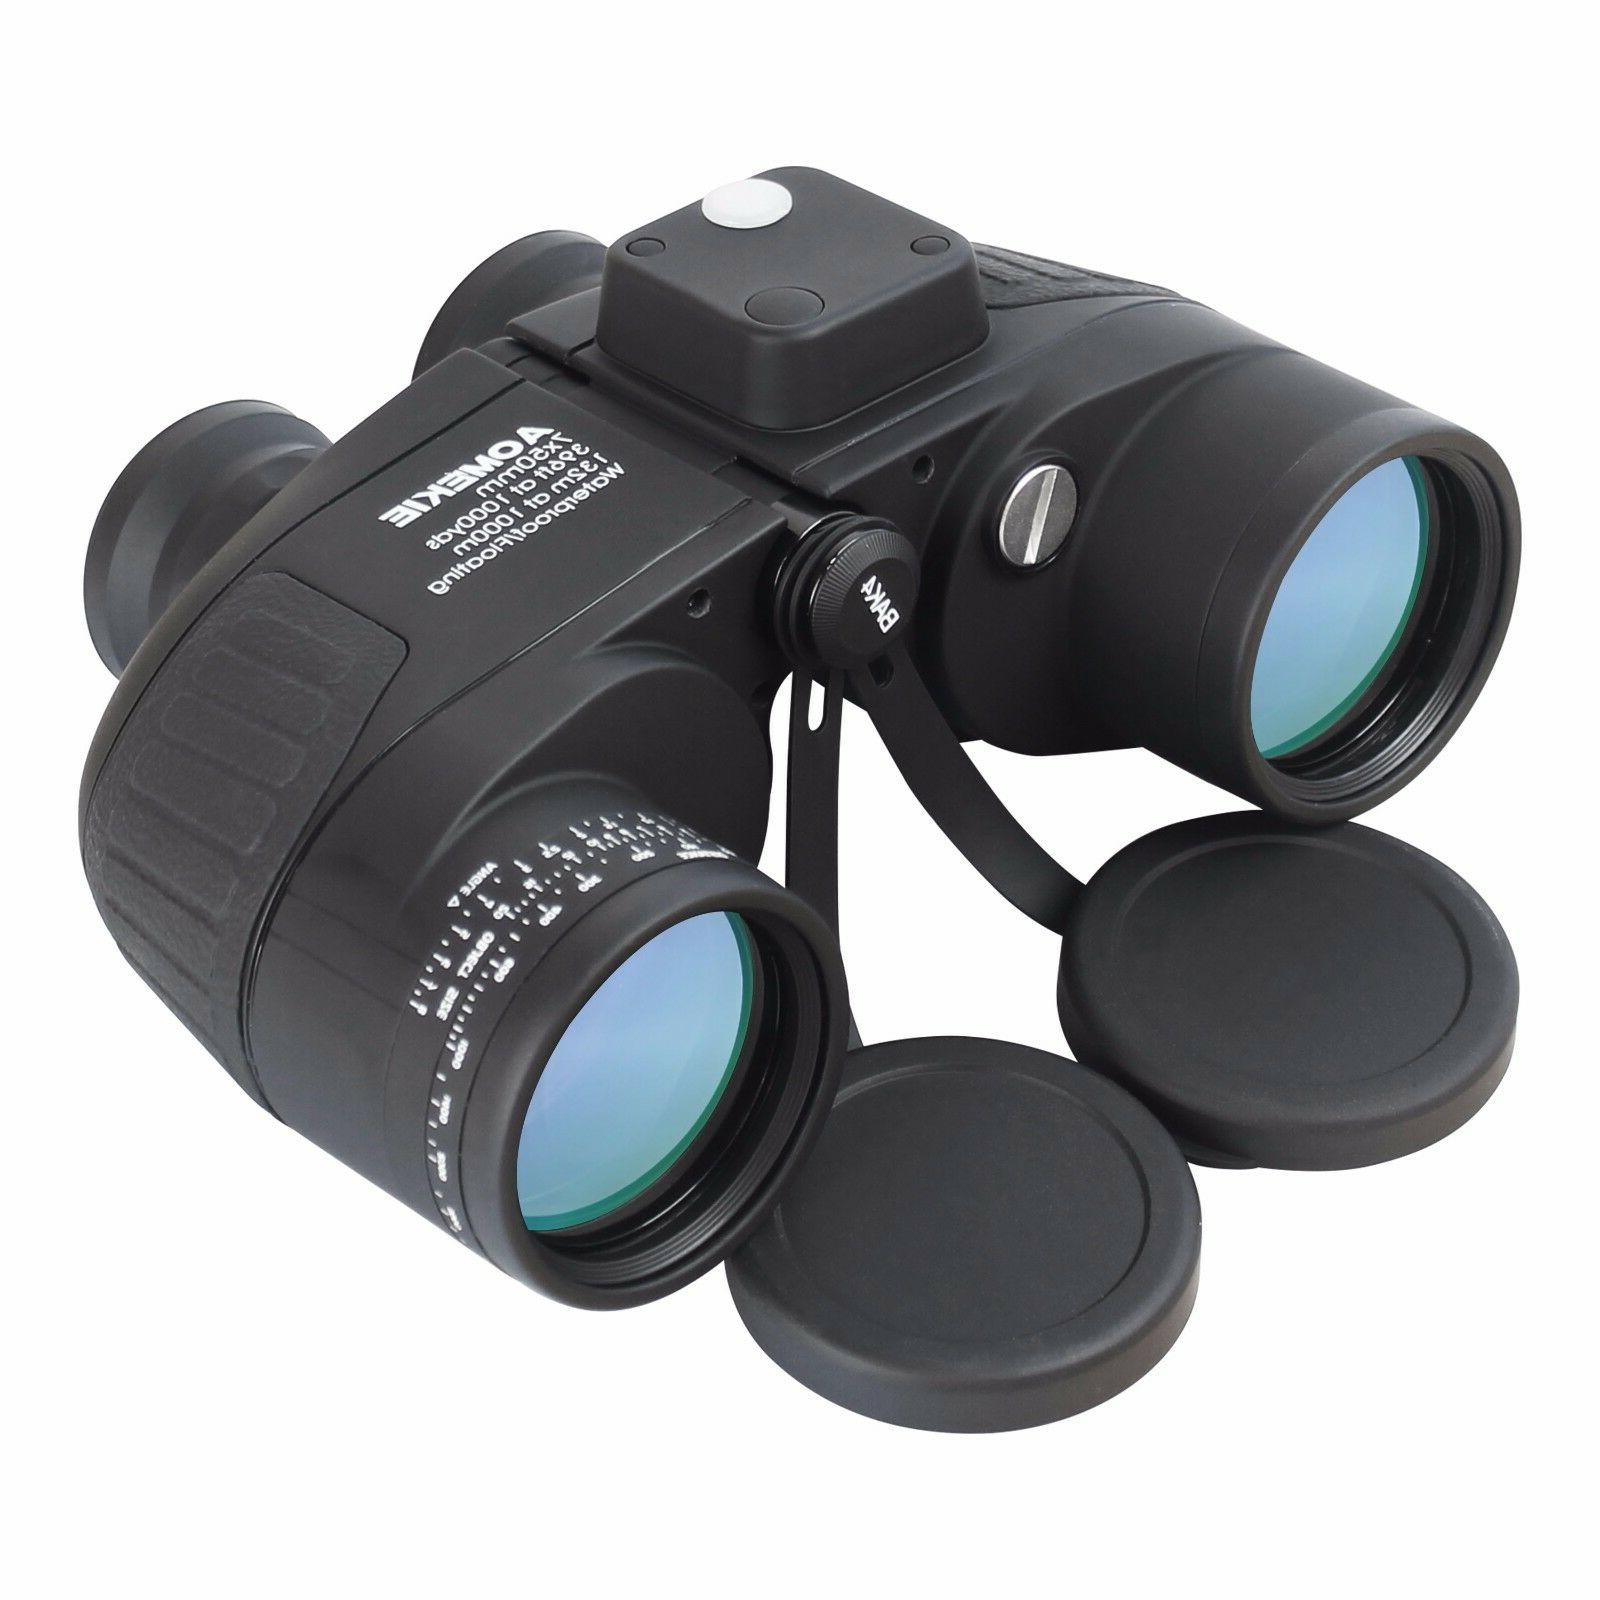 7X50 Binoculars with Night Vision Rangefinder Compass Waterp